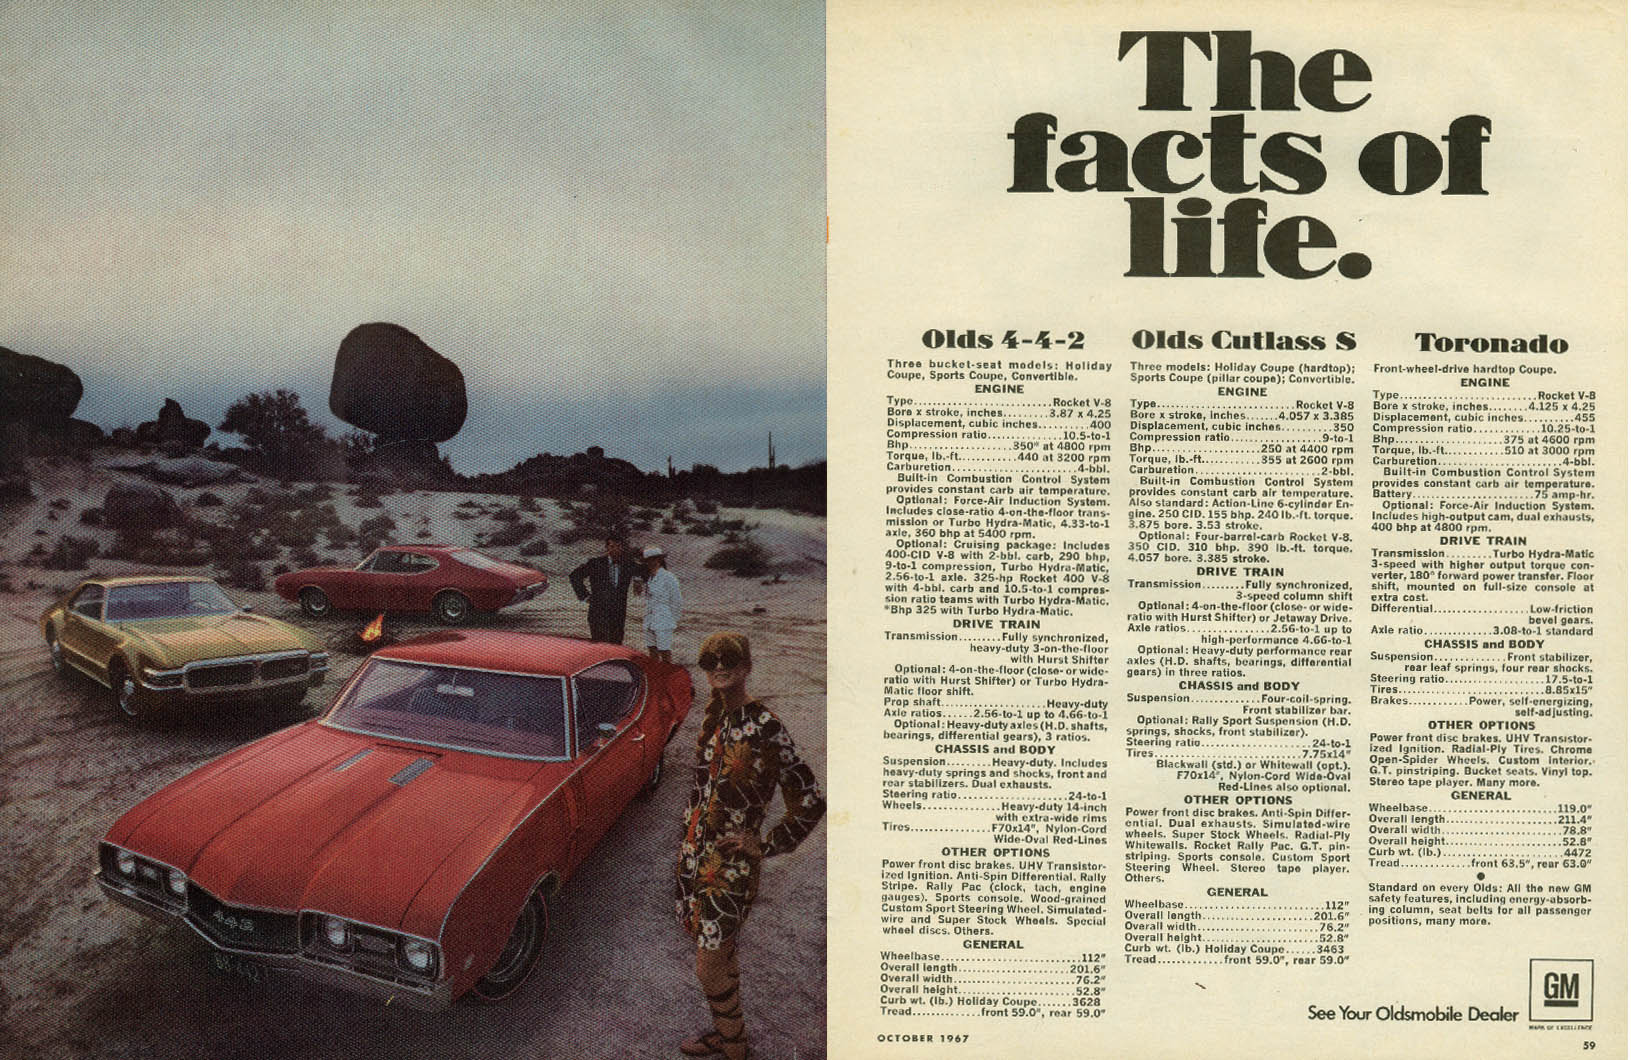 The facts of life. Oldsmobile 4-4-2 Cutlass S Toronado ad 1968